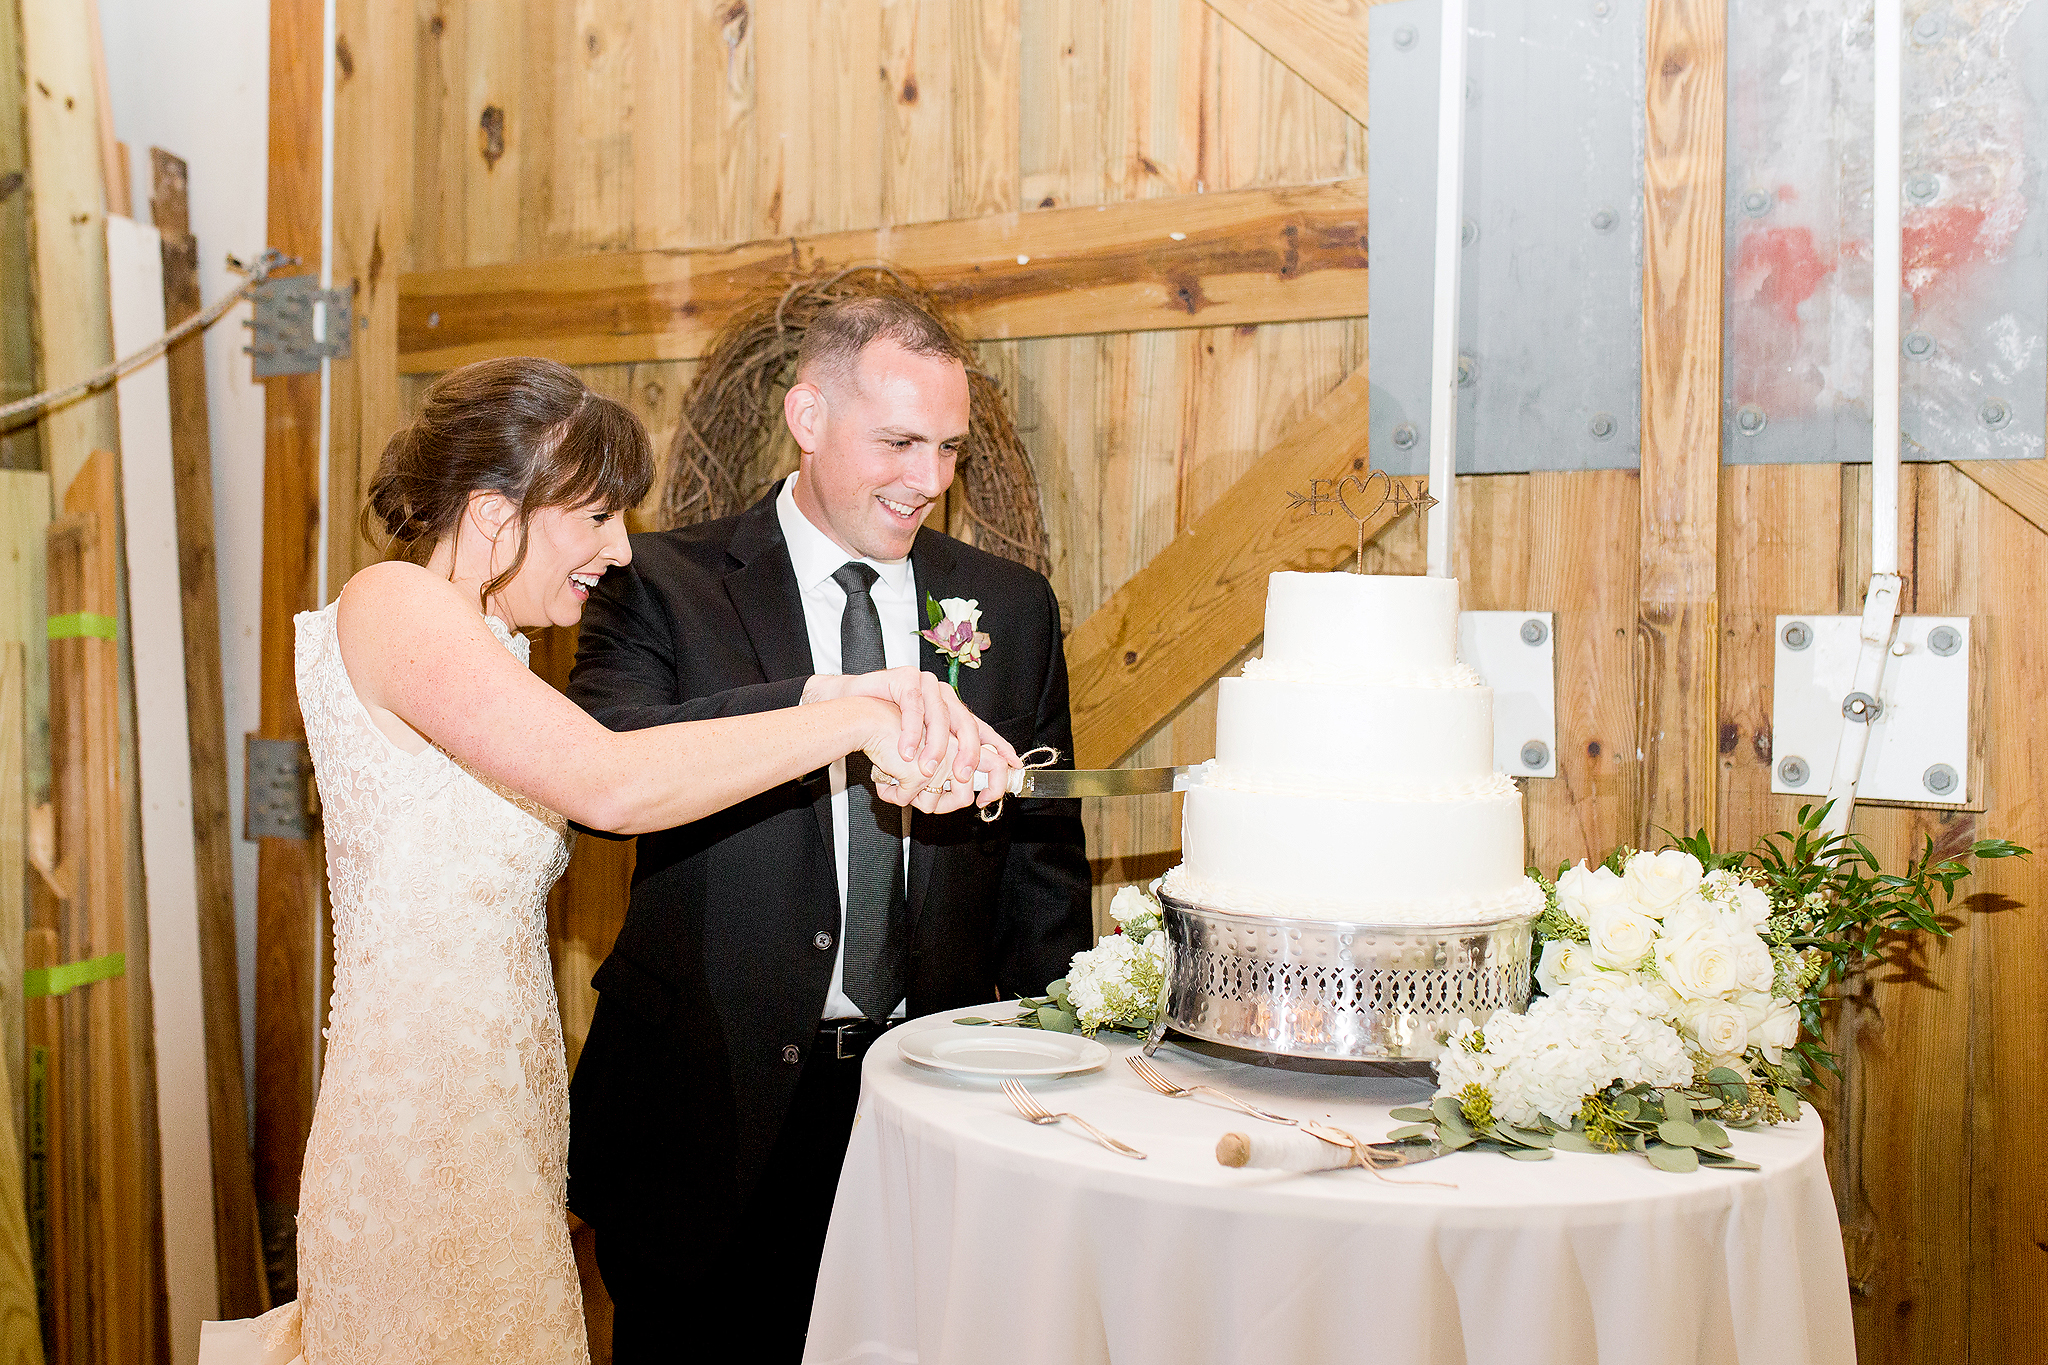 harvey-w-smith-watercraft-center-wedding.jpg